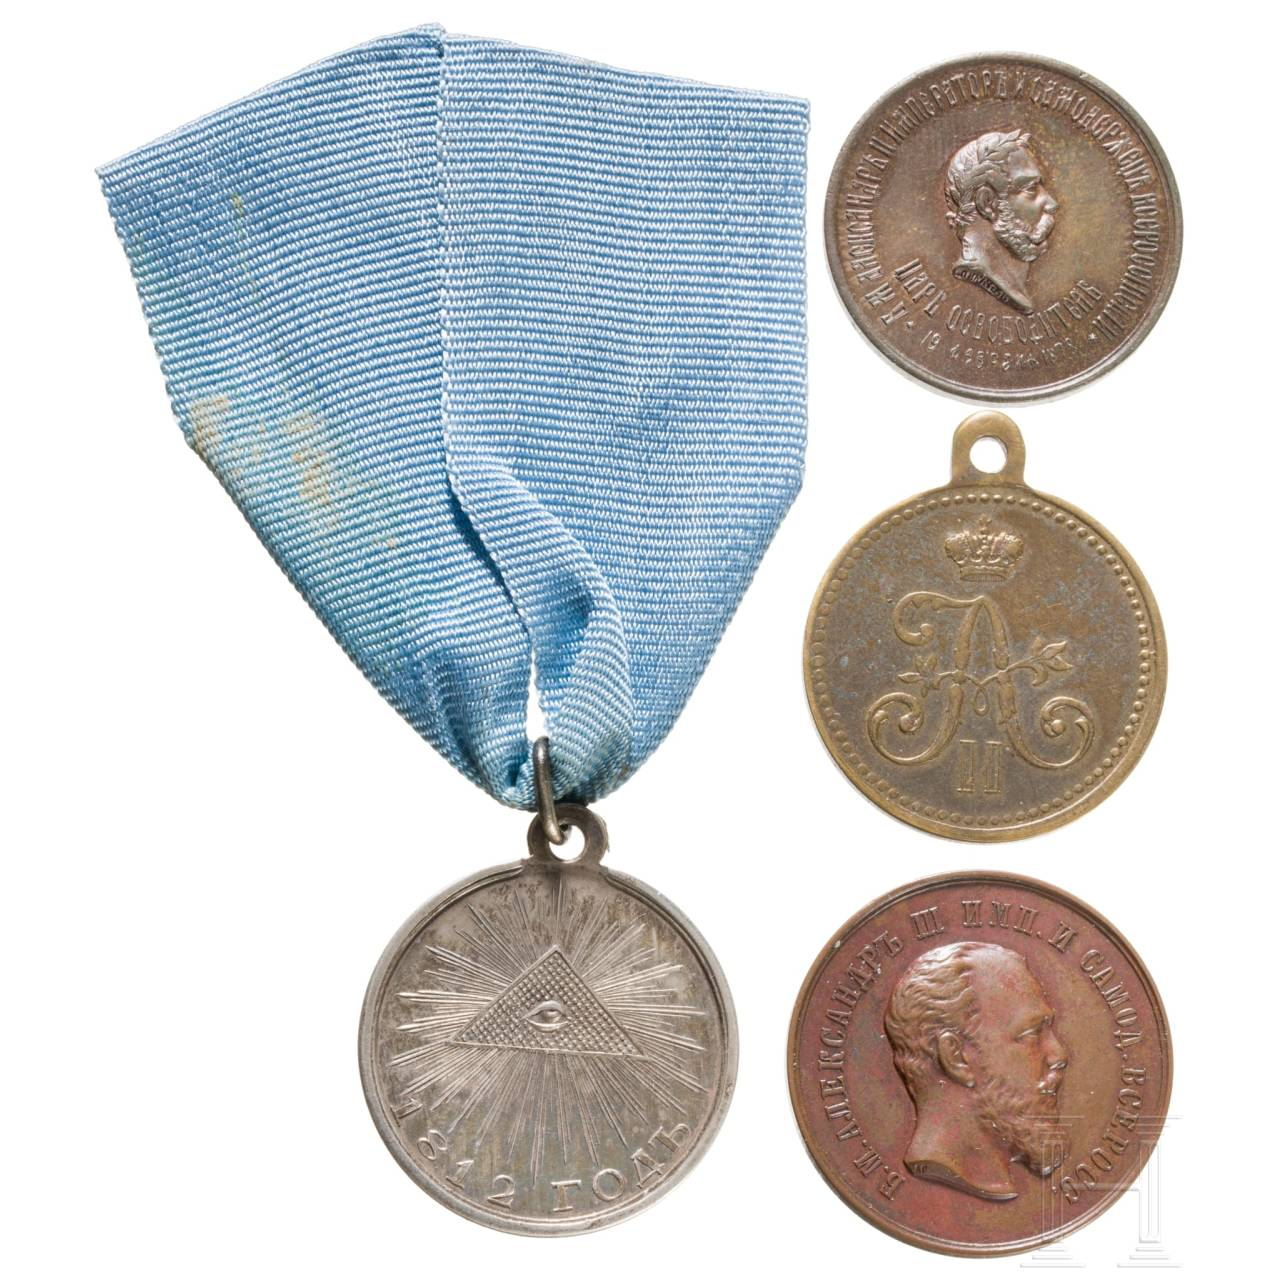 A Silver Medal for the Patriotic War in 1812 and three other medals, Russia, mainly 19th century